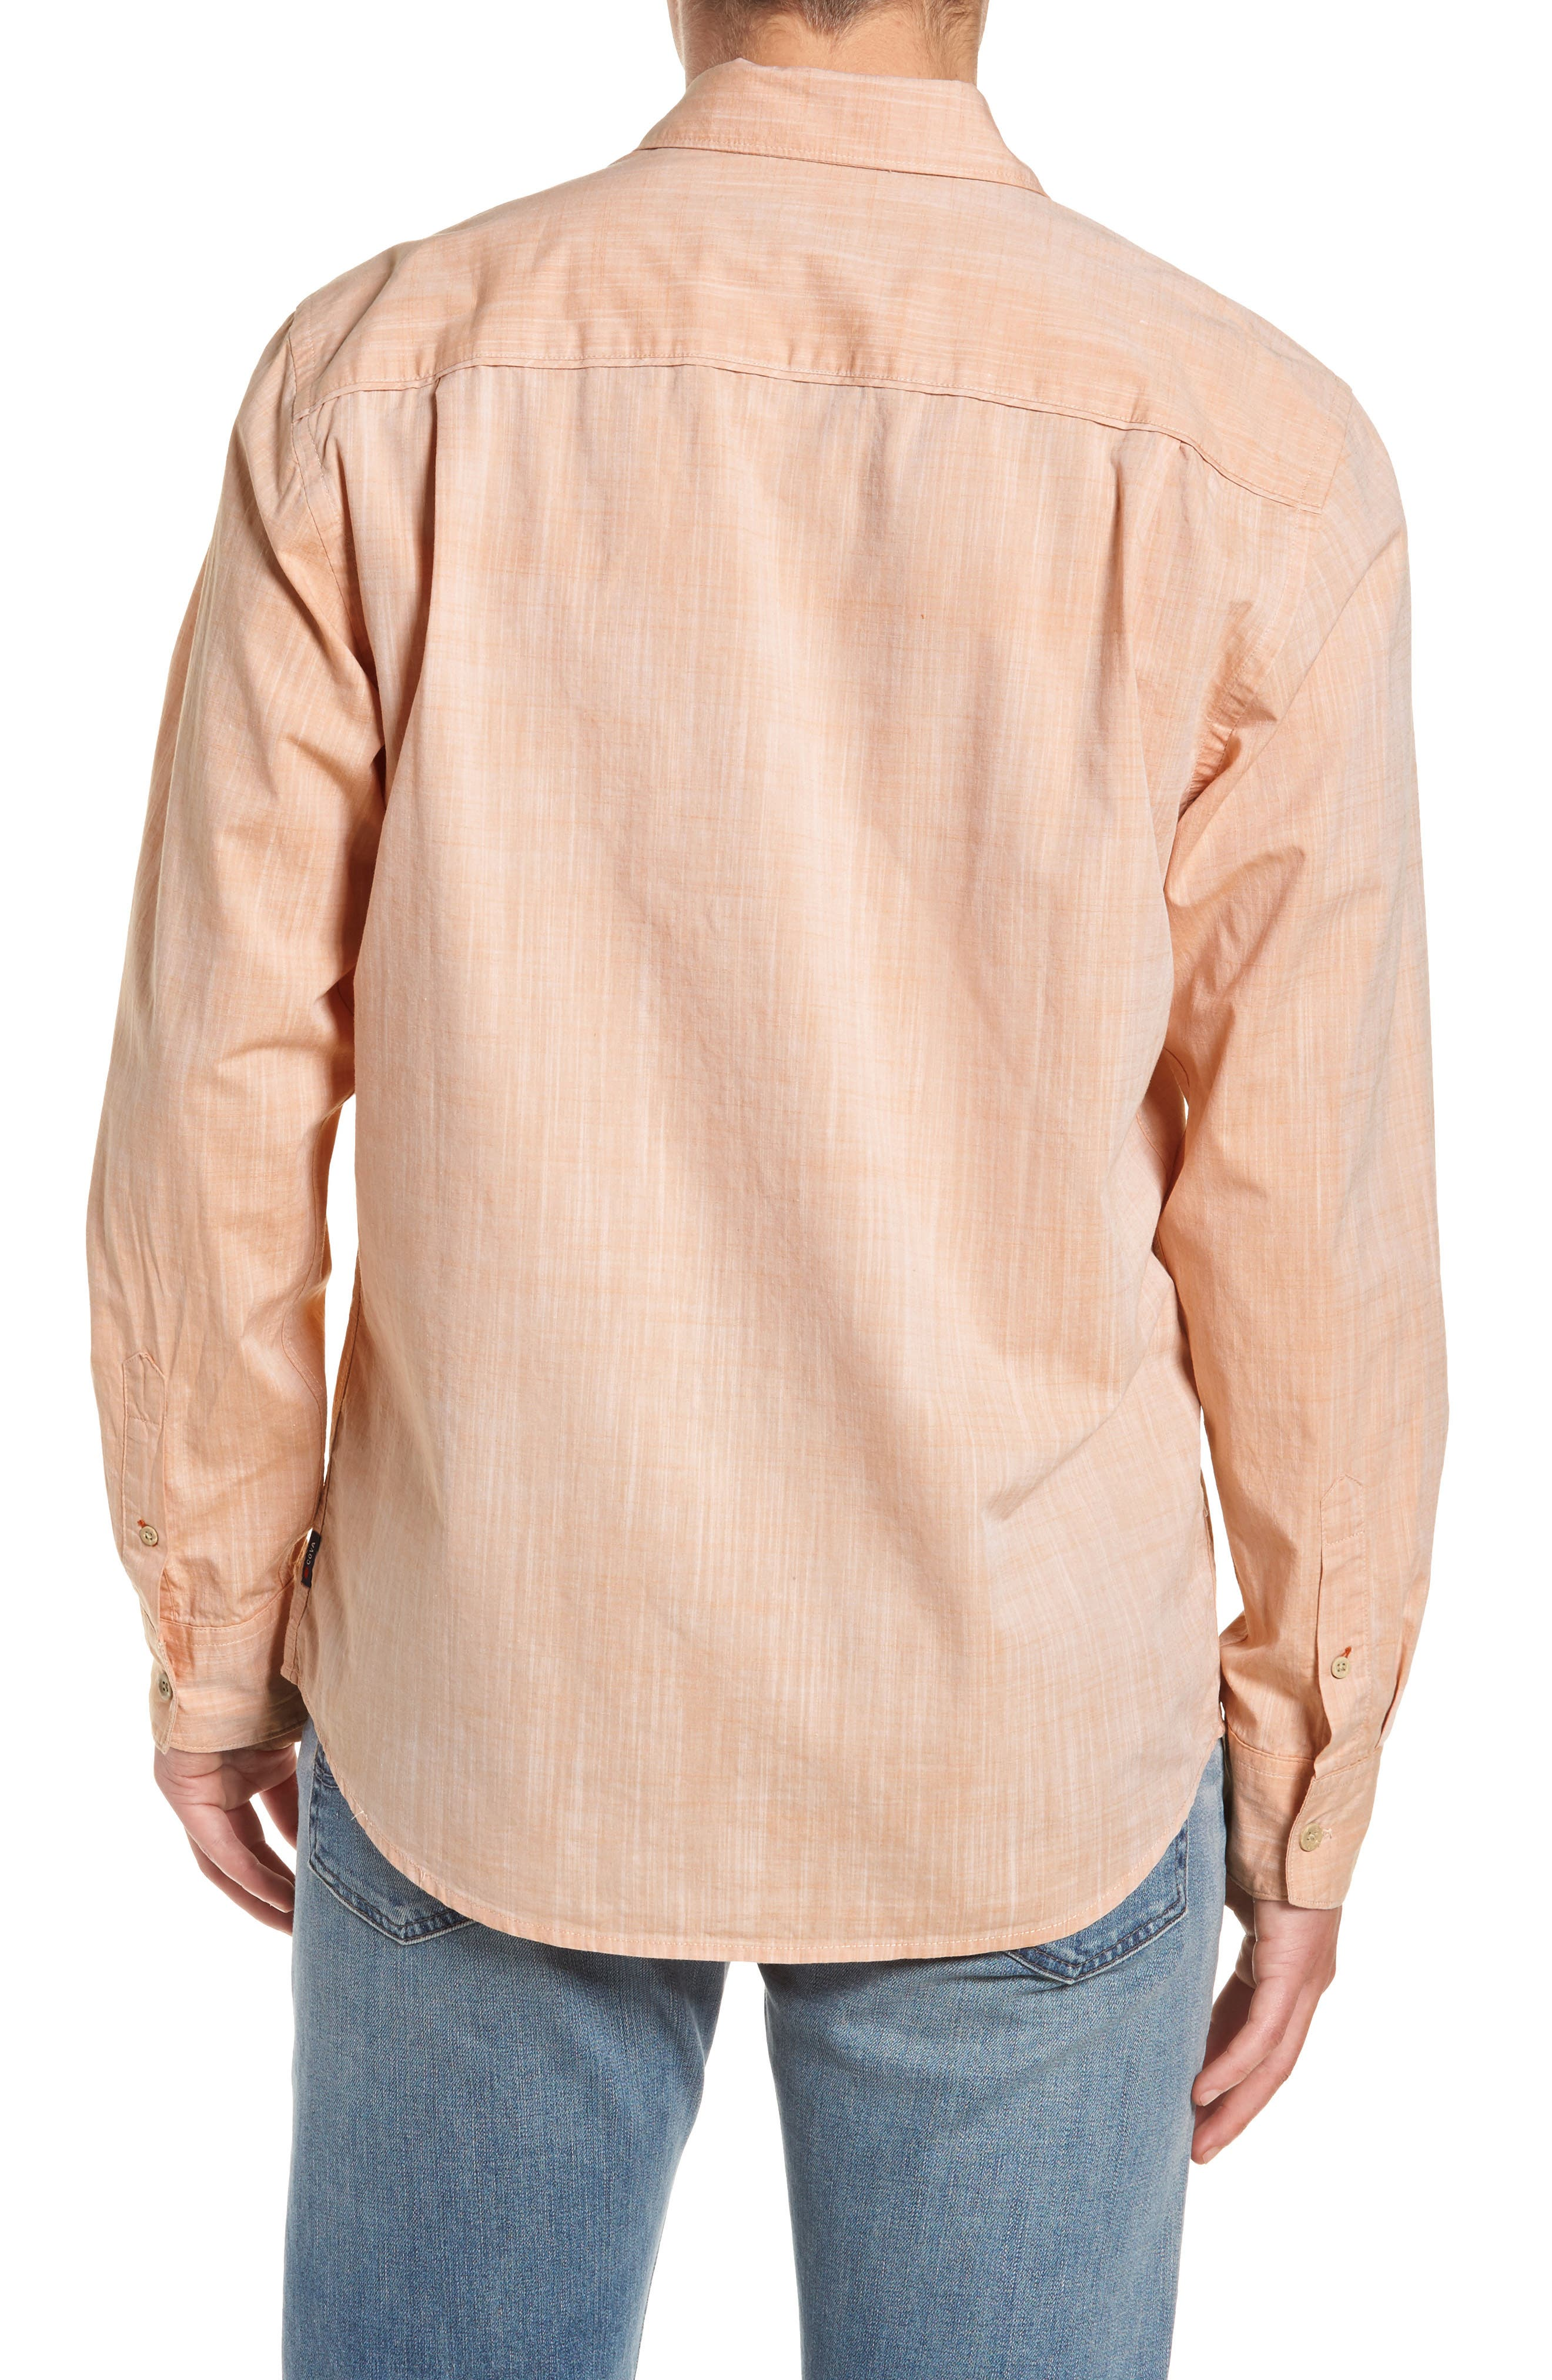 Mai Tai Regular Fit Sport Shirt,                             Alternate thumbnail 3, color,                             Papaya